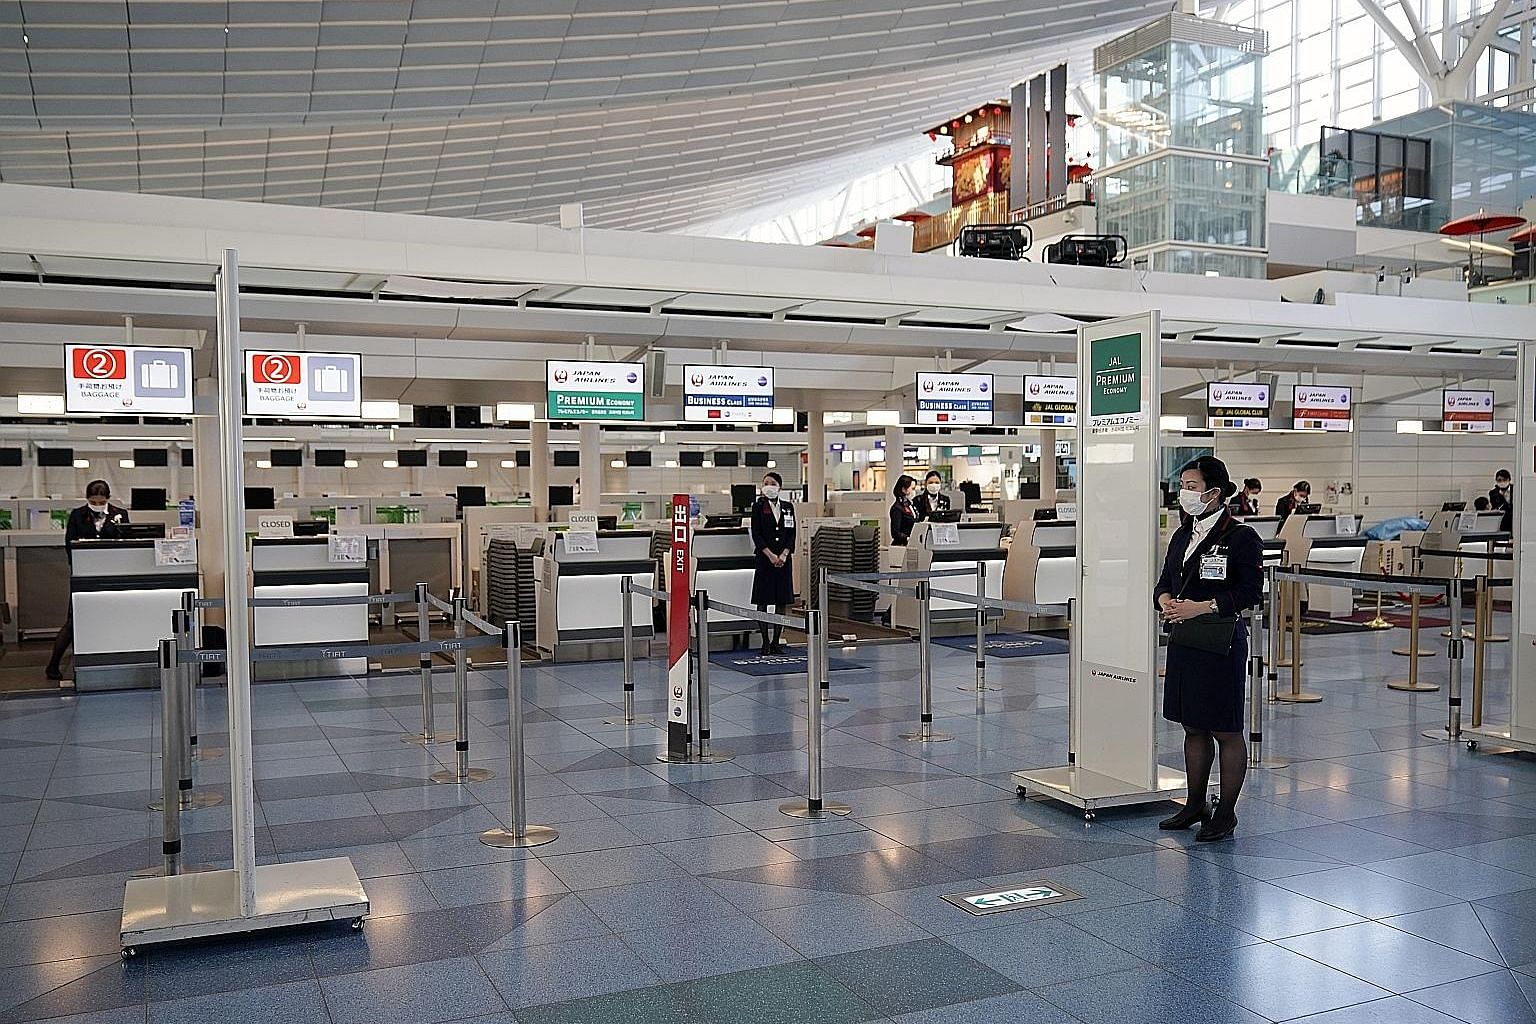 Japan Airlines ground staff wearing face masks at Haneda Airport earlier this month. The coronavirus crisis led to a 58.3 per cent plunge in tourist arrivals in Japan last month, and this is set to worsen with the worldwide travel restrictions that a